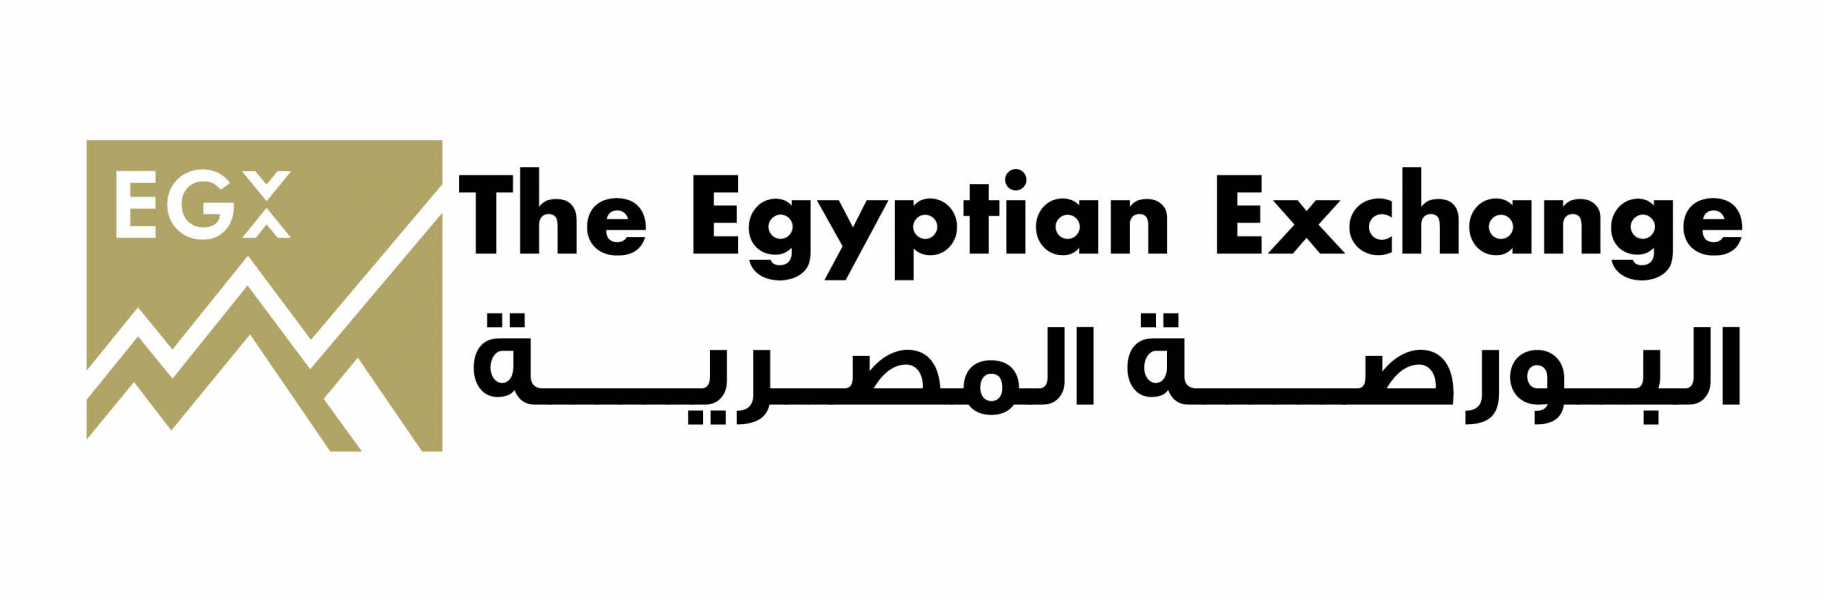 Egyptian-Exchange-is-Completing-its-Reform-Efforts